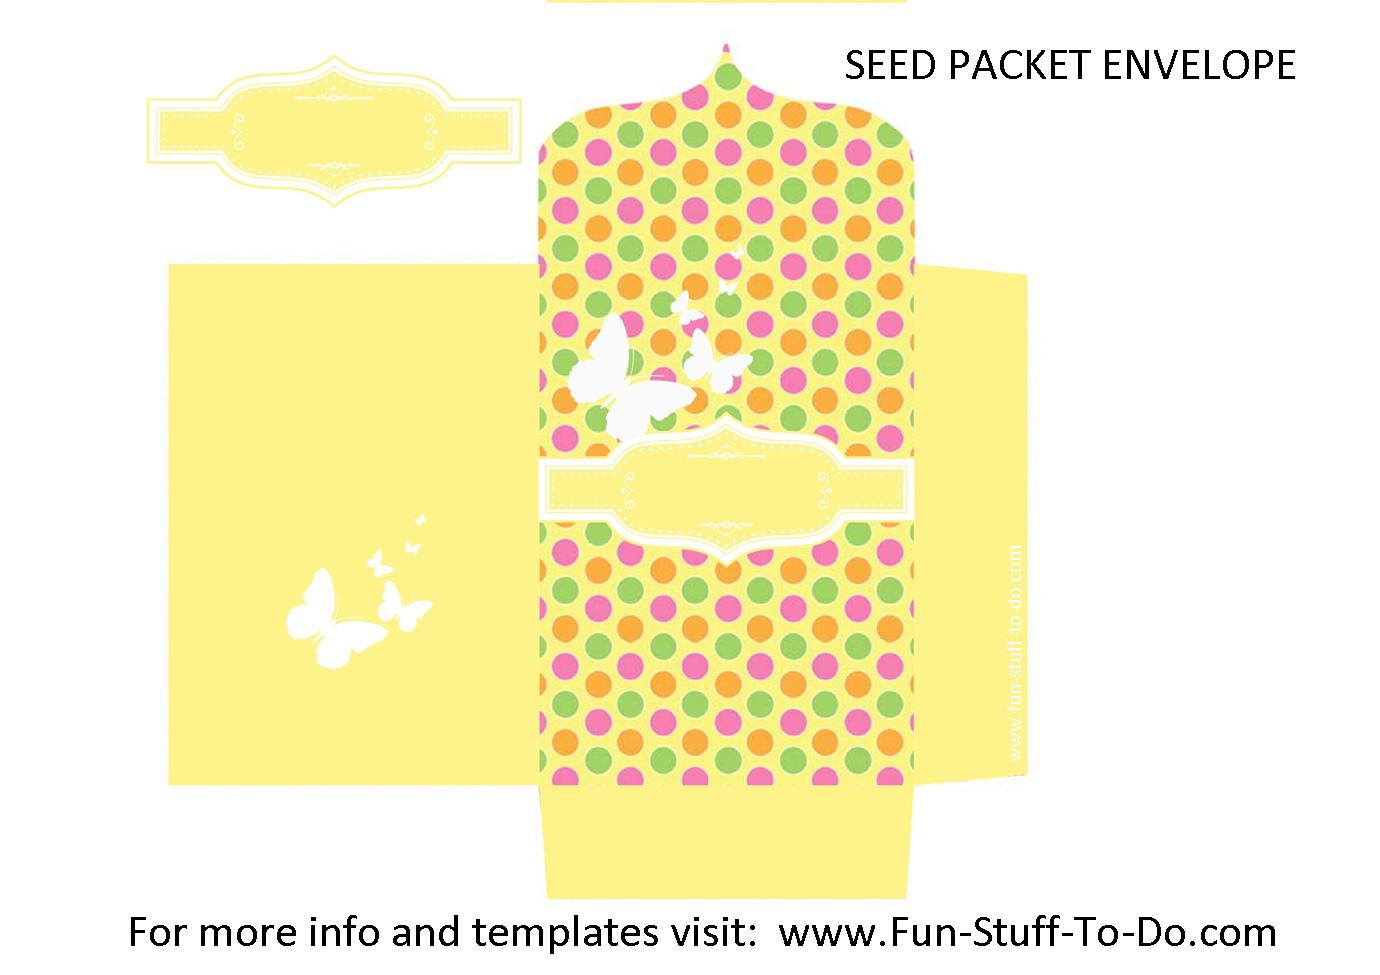 seed packet envelope made with transparent overlay template from Fun-stuff-to-do.com